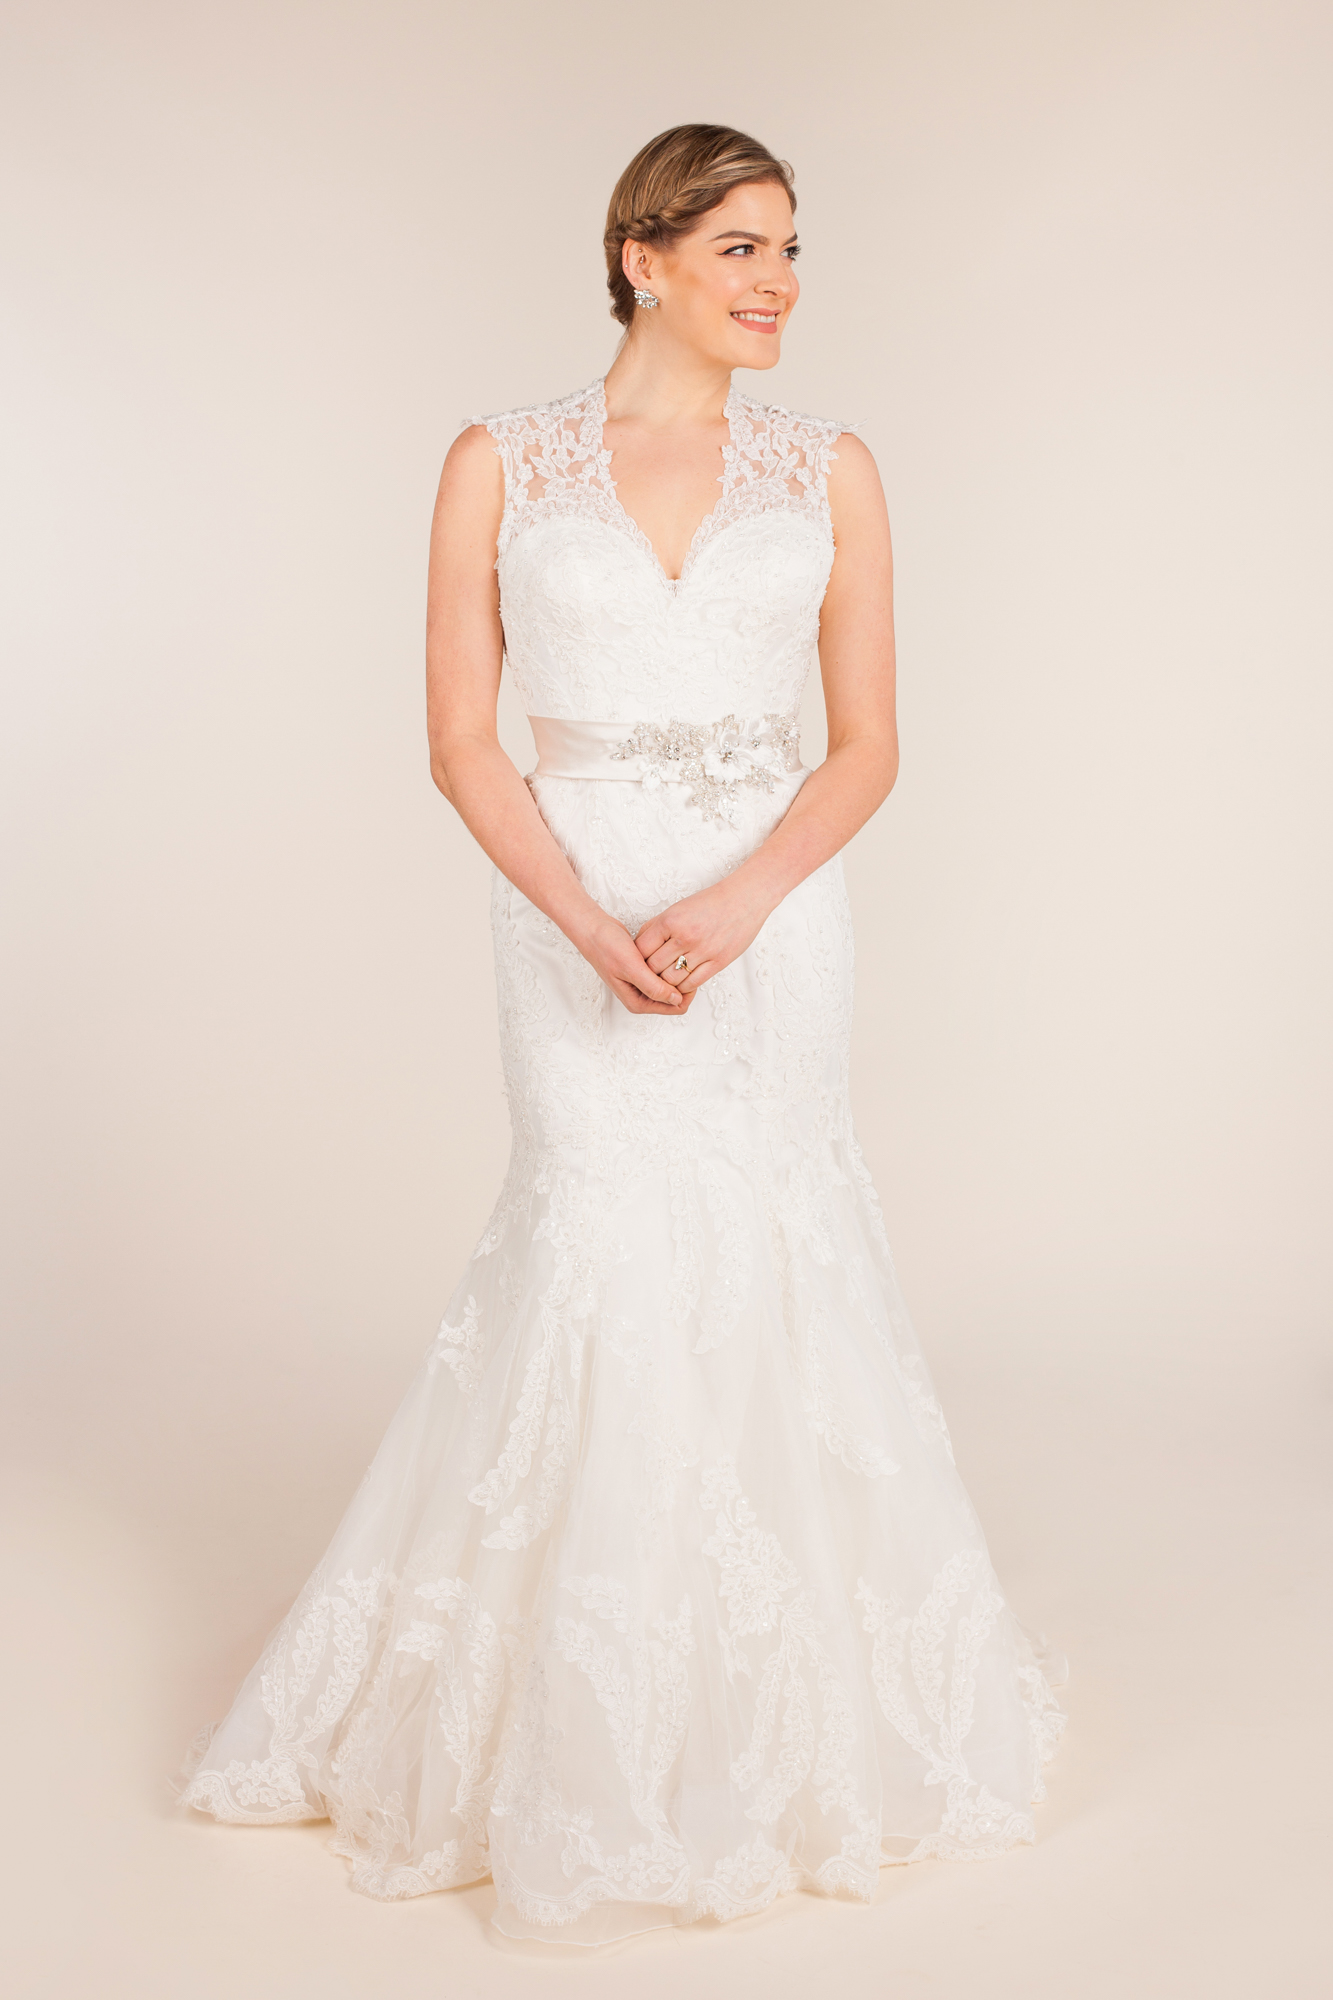 Allure bridals size 10 - $925 - (45% OFF)